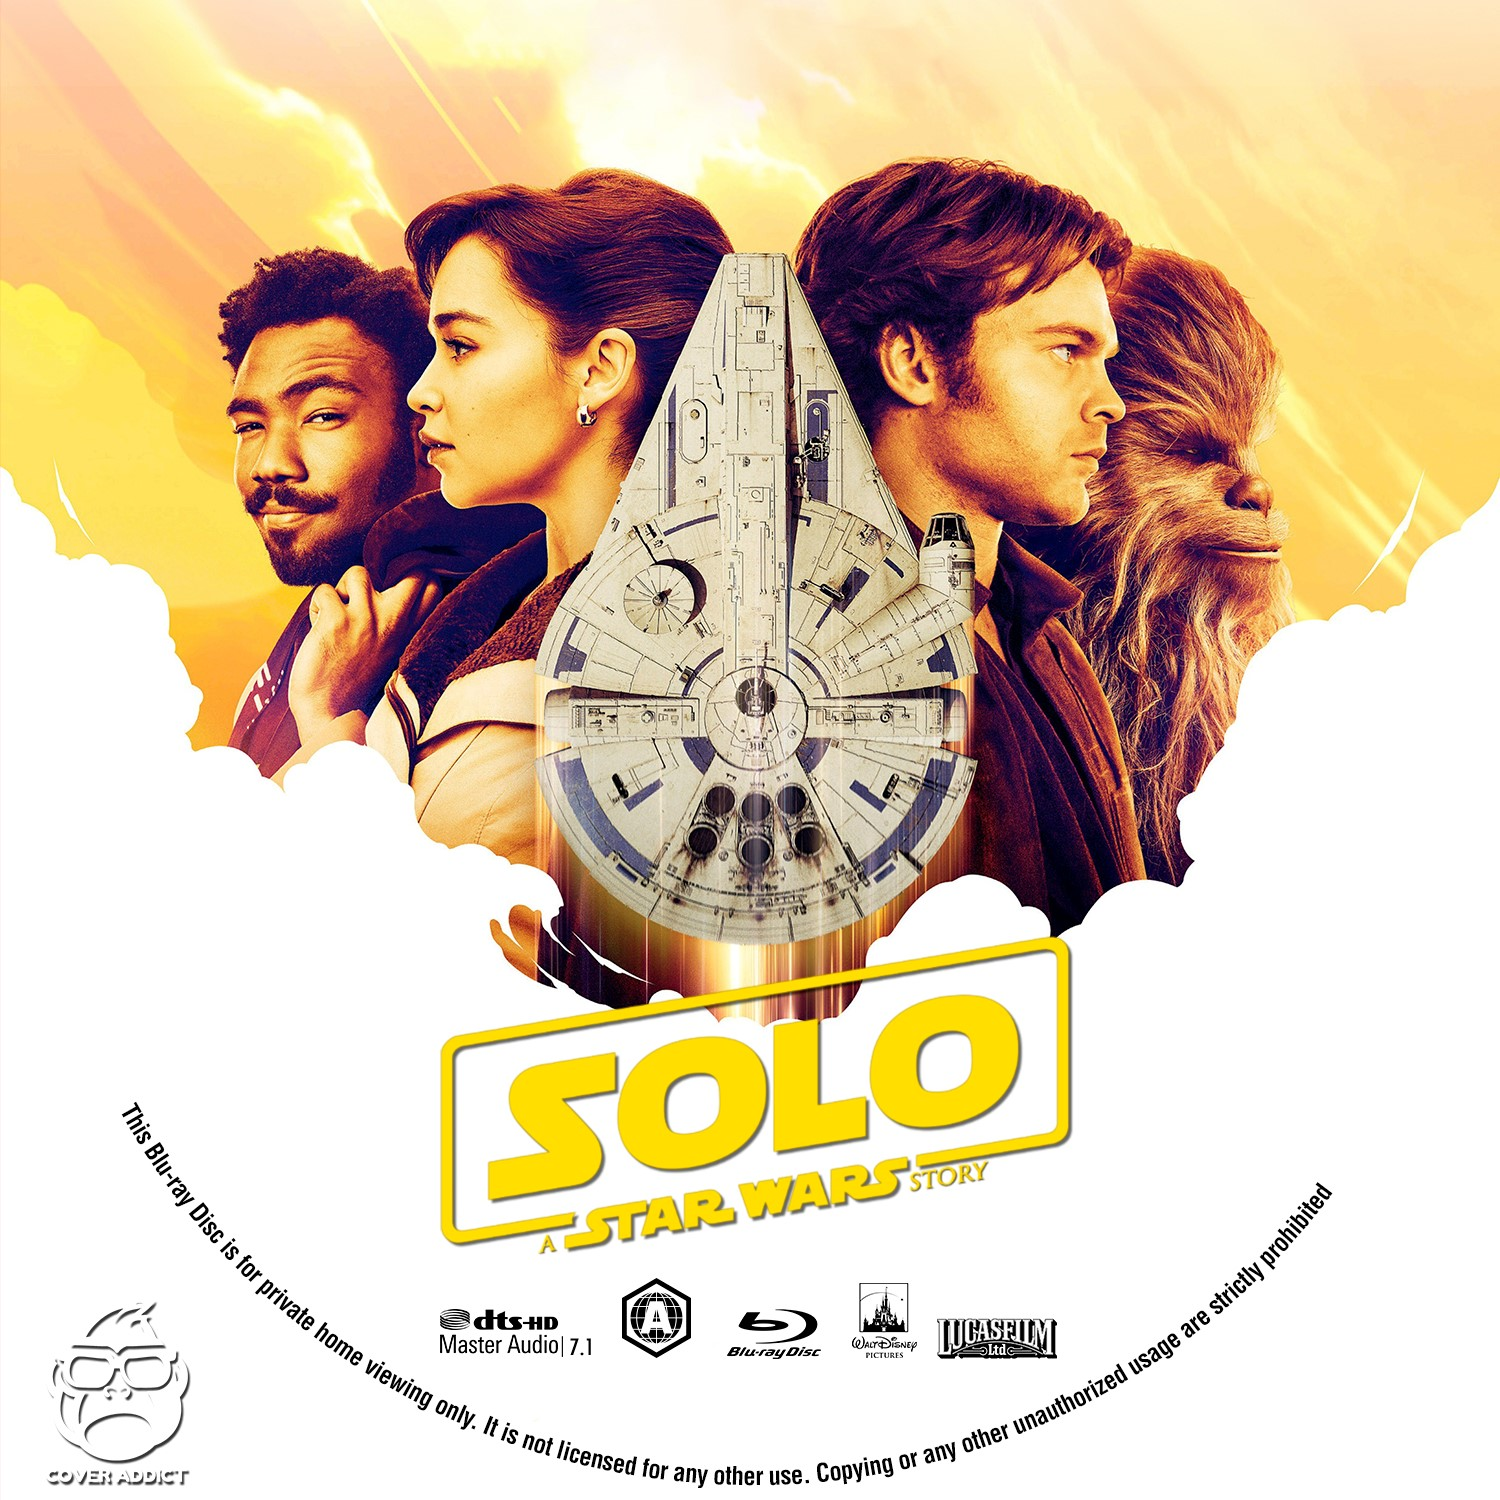 300 Full Movie >> Solo: A Star Wars Story Bluray Label - Cover Addict - DVD and Bluray Covers